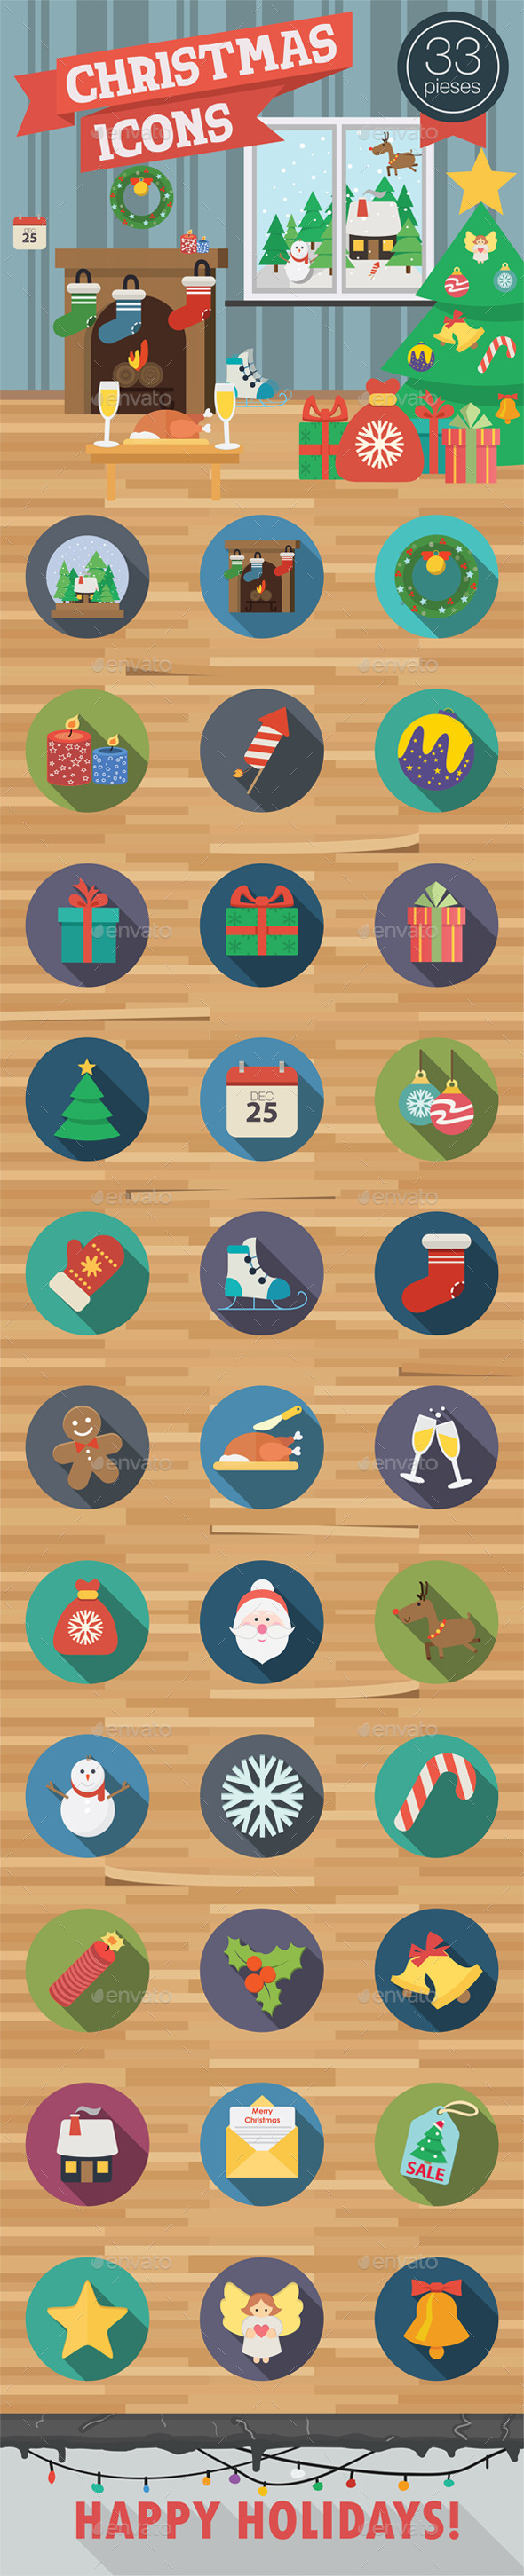 GraphicRiver 33 Christmas Icons in Flat Style 9848997